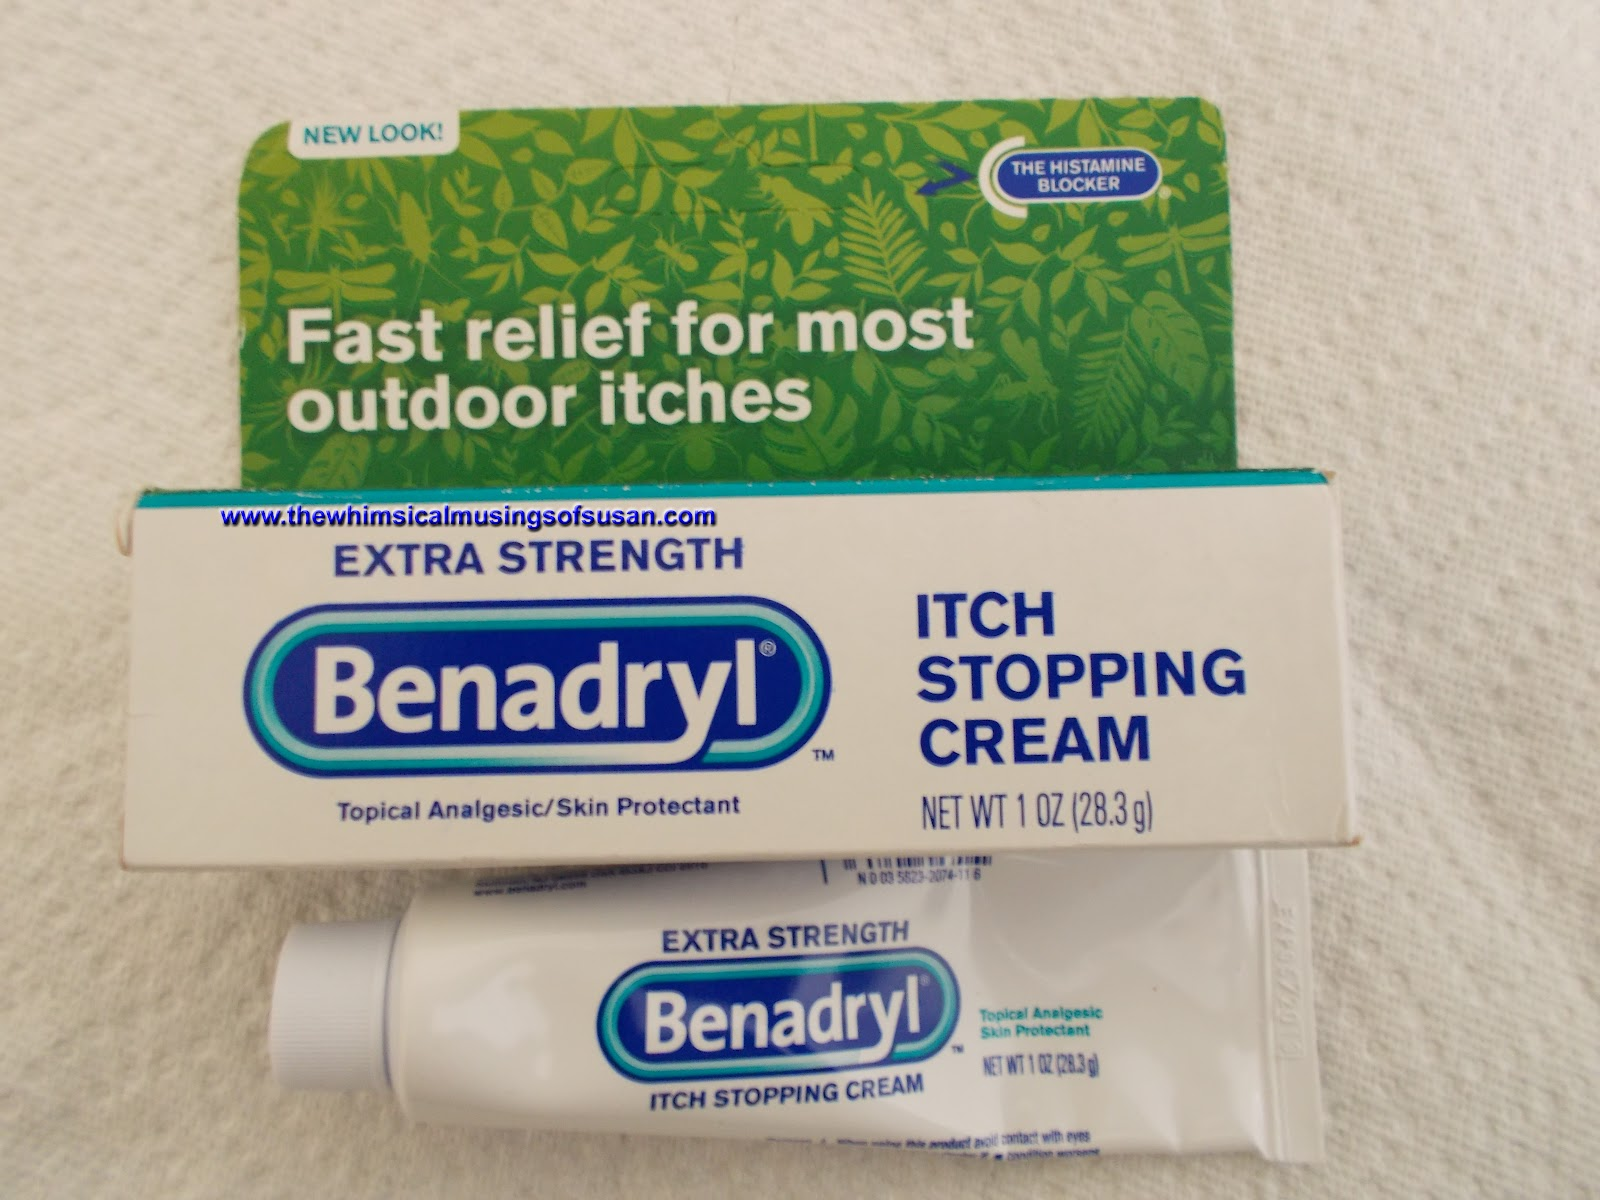 The Whimsical Musings of Susan: Extra Strength Benadryl Itch